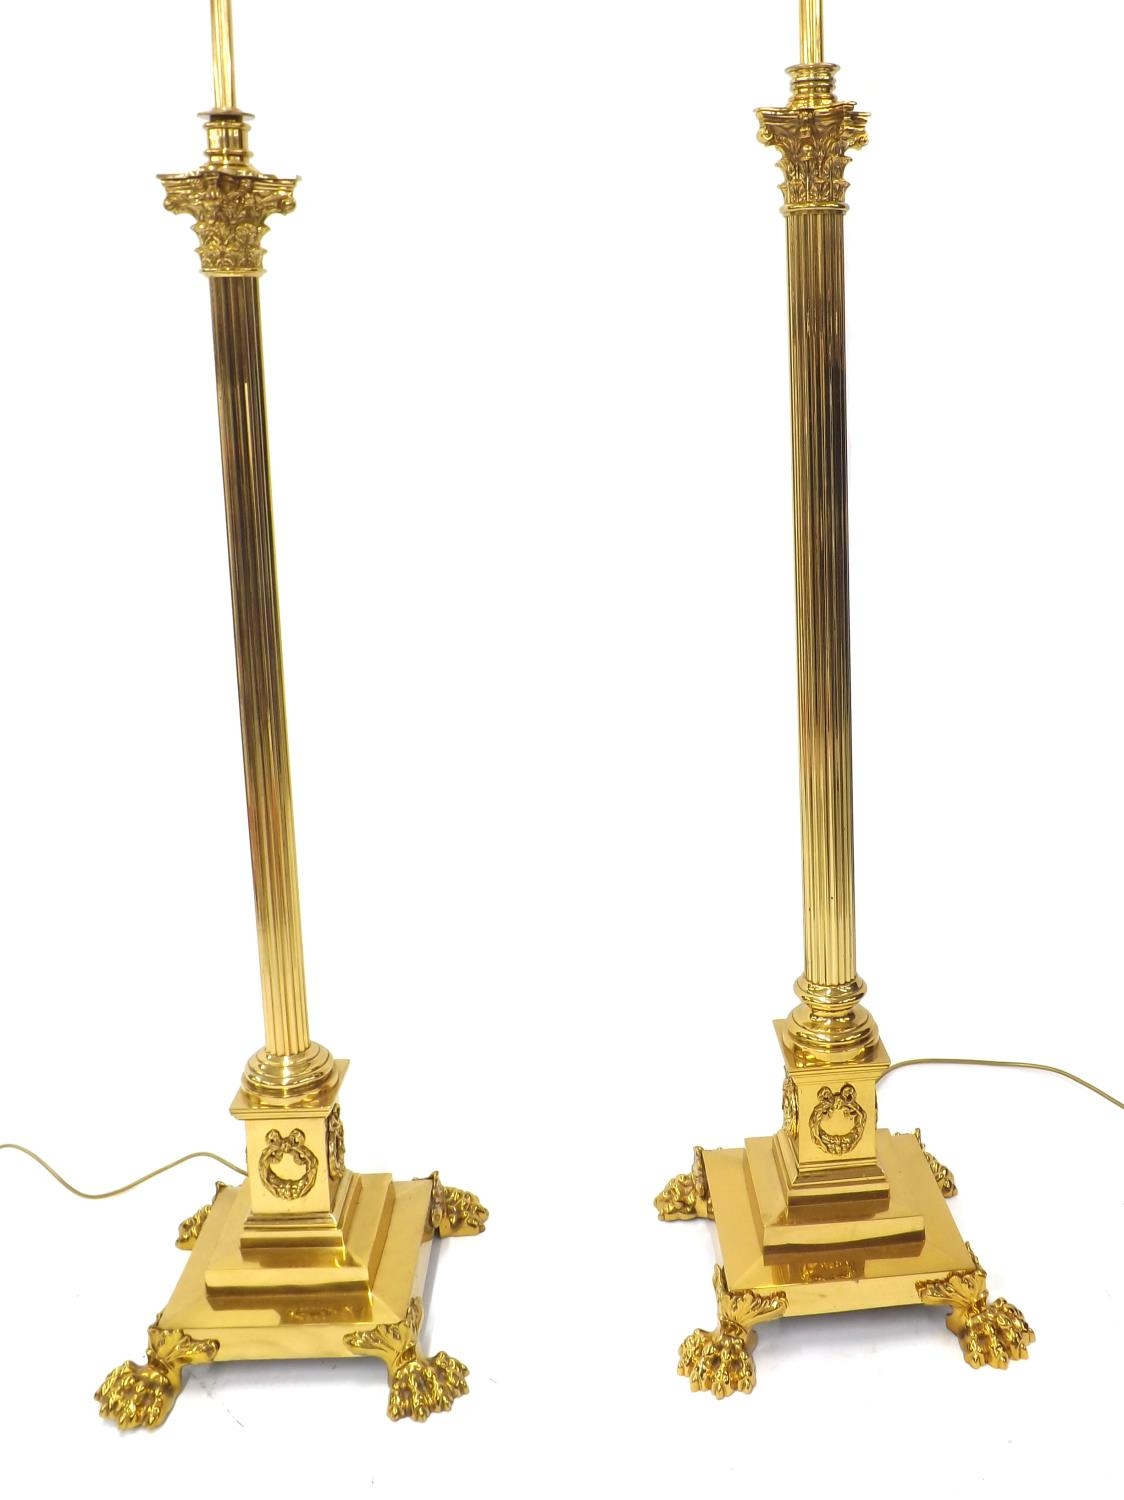 Matched pair of Corinthian column telescopic brass standard lamps with paw feet, with silk shades, - Image 3 of 5